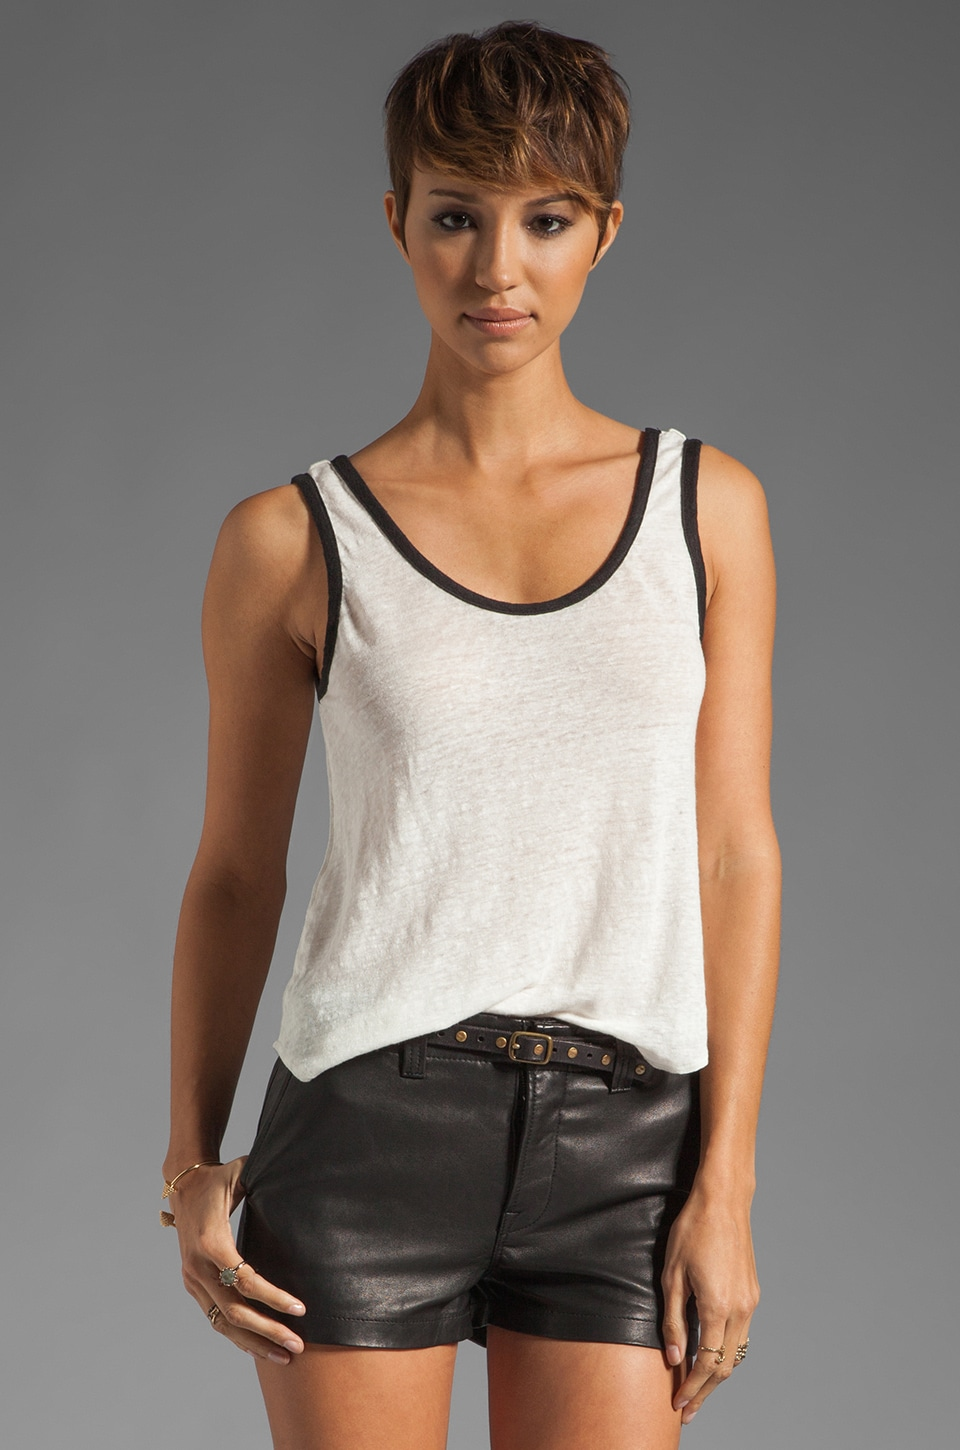 Bobi Linen Colorblock Tank in Light/Black